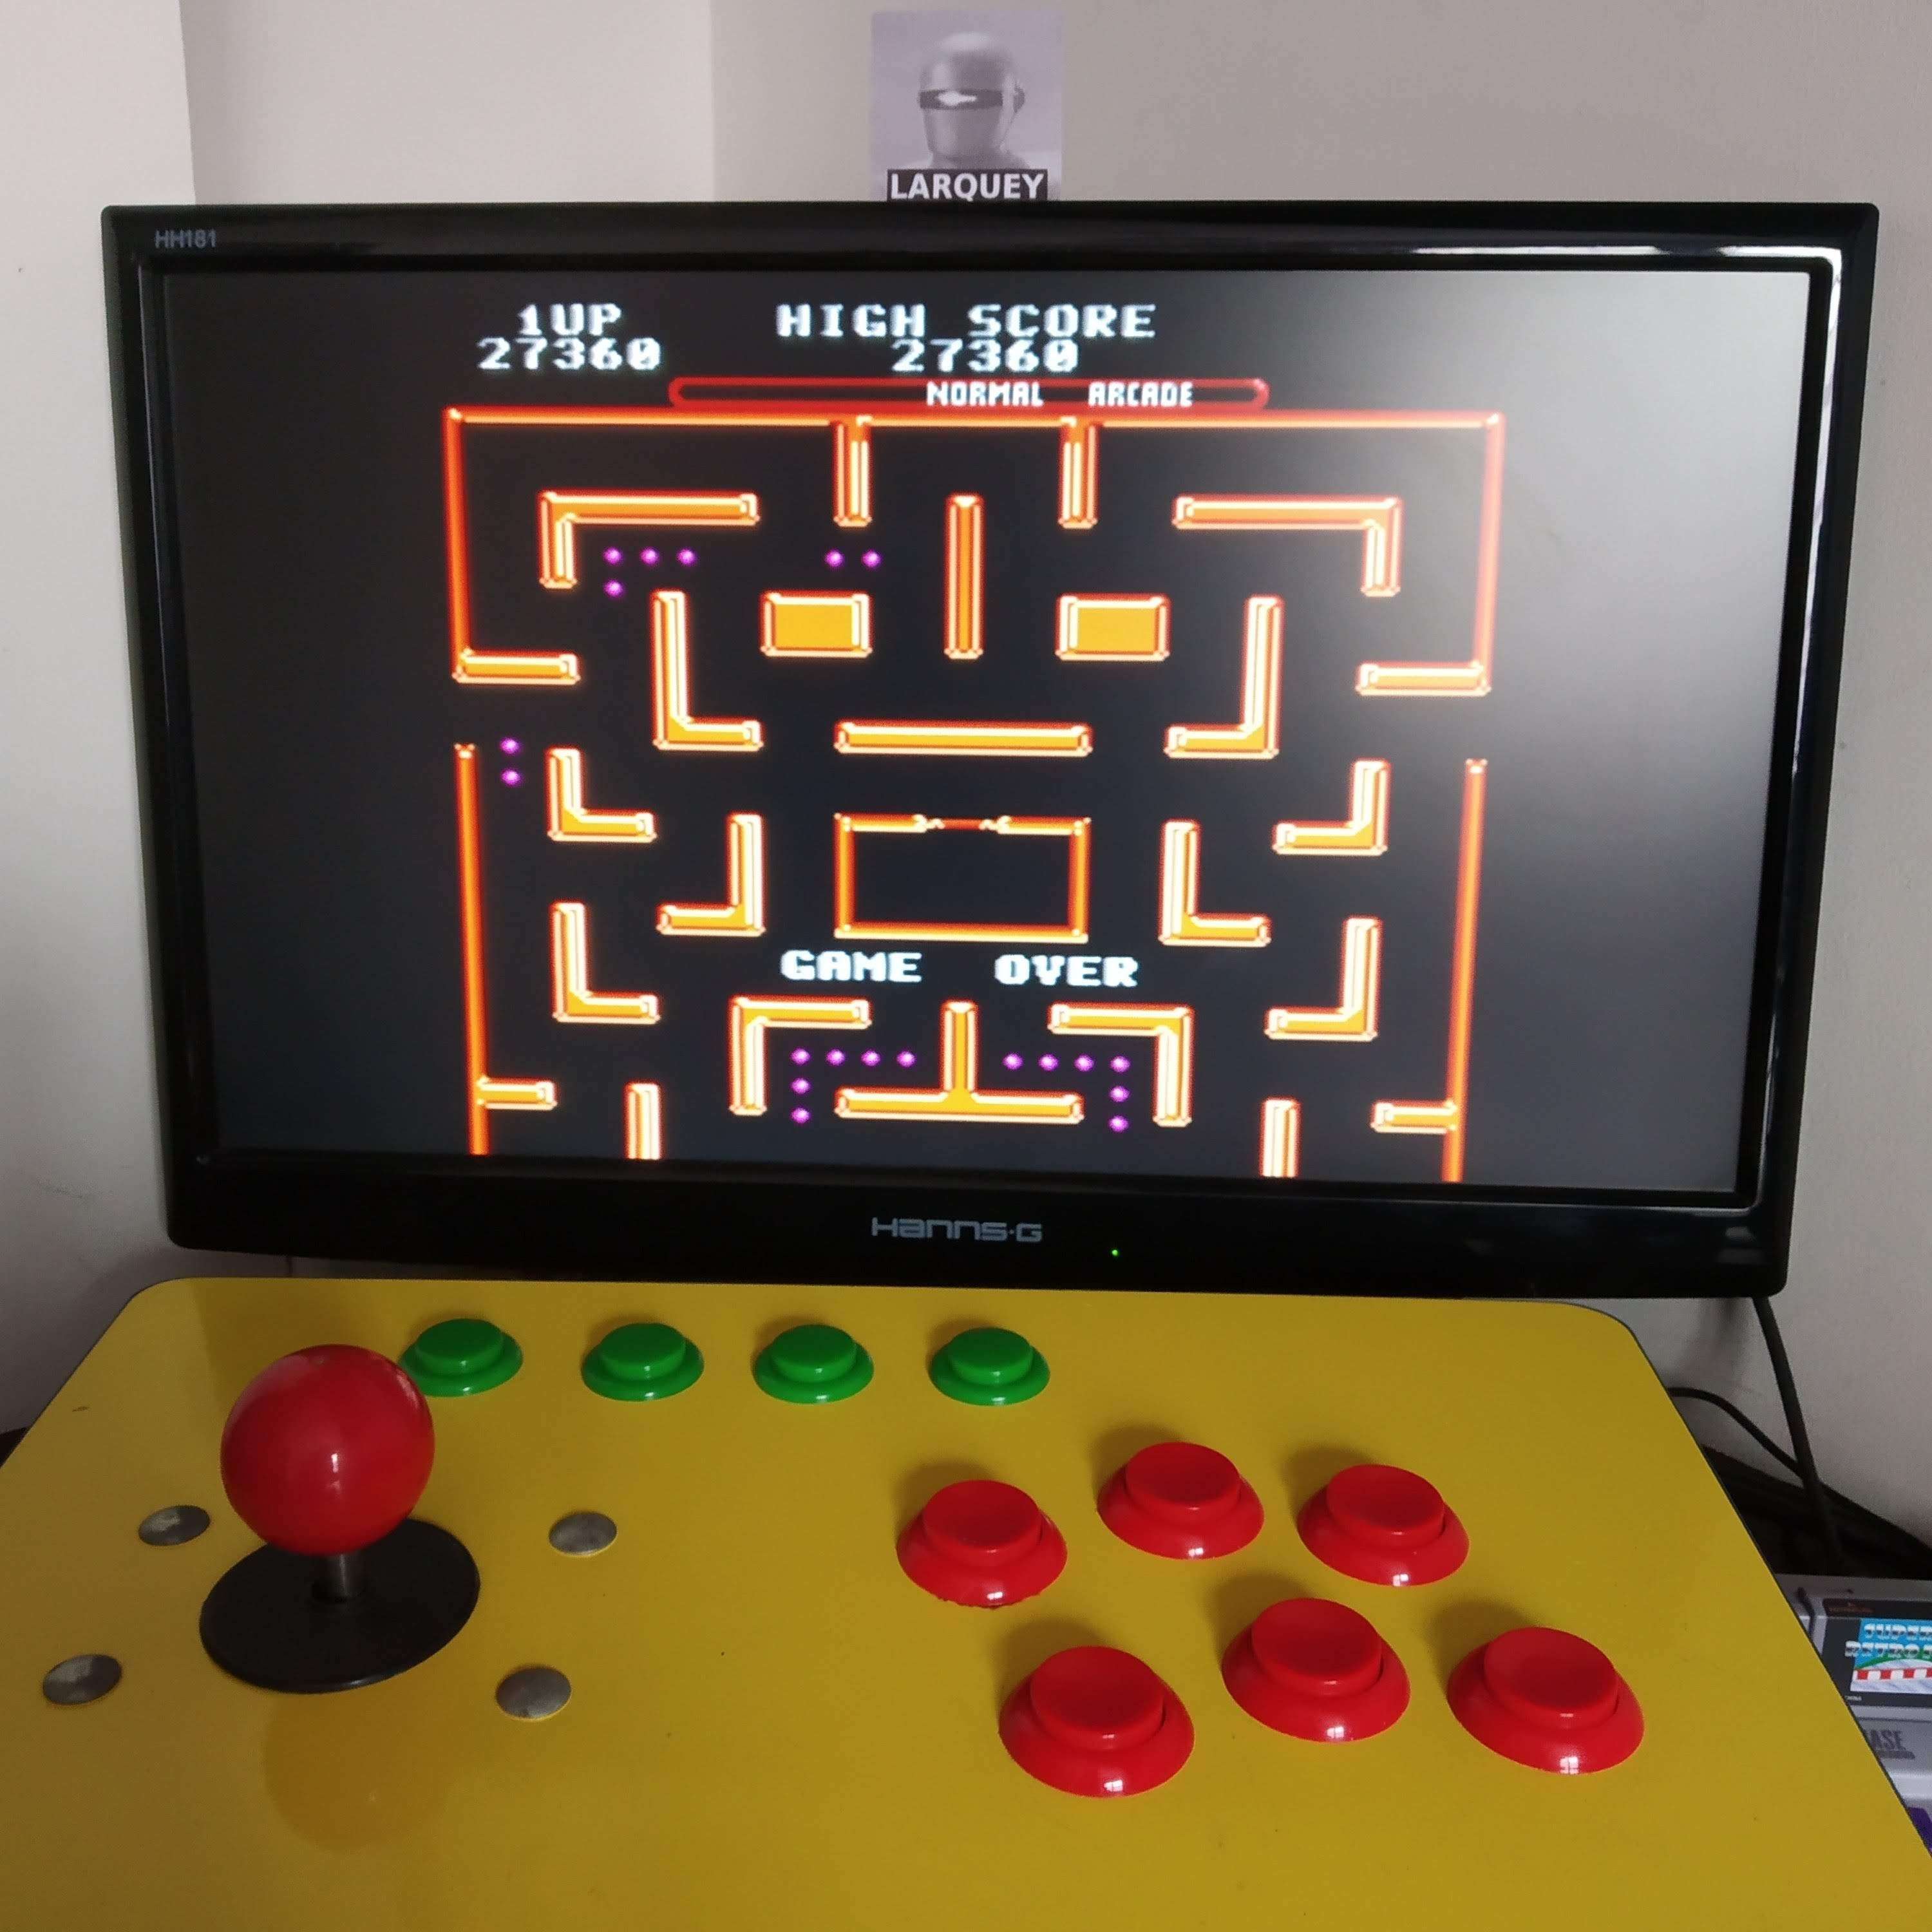 Larquey: Ms. Pac-Man [Off/Normal/Arcade/Level 3 Start] (SNES/Super Famicom Emulated) 27,360 points on 2020-08-16 09:19:13